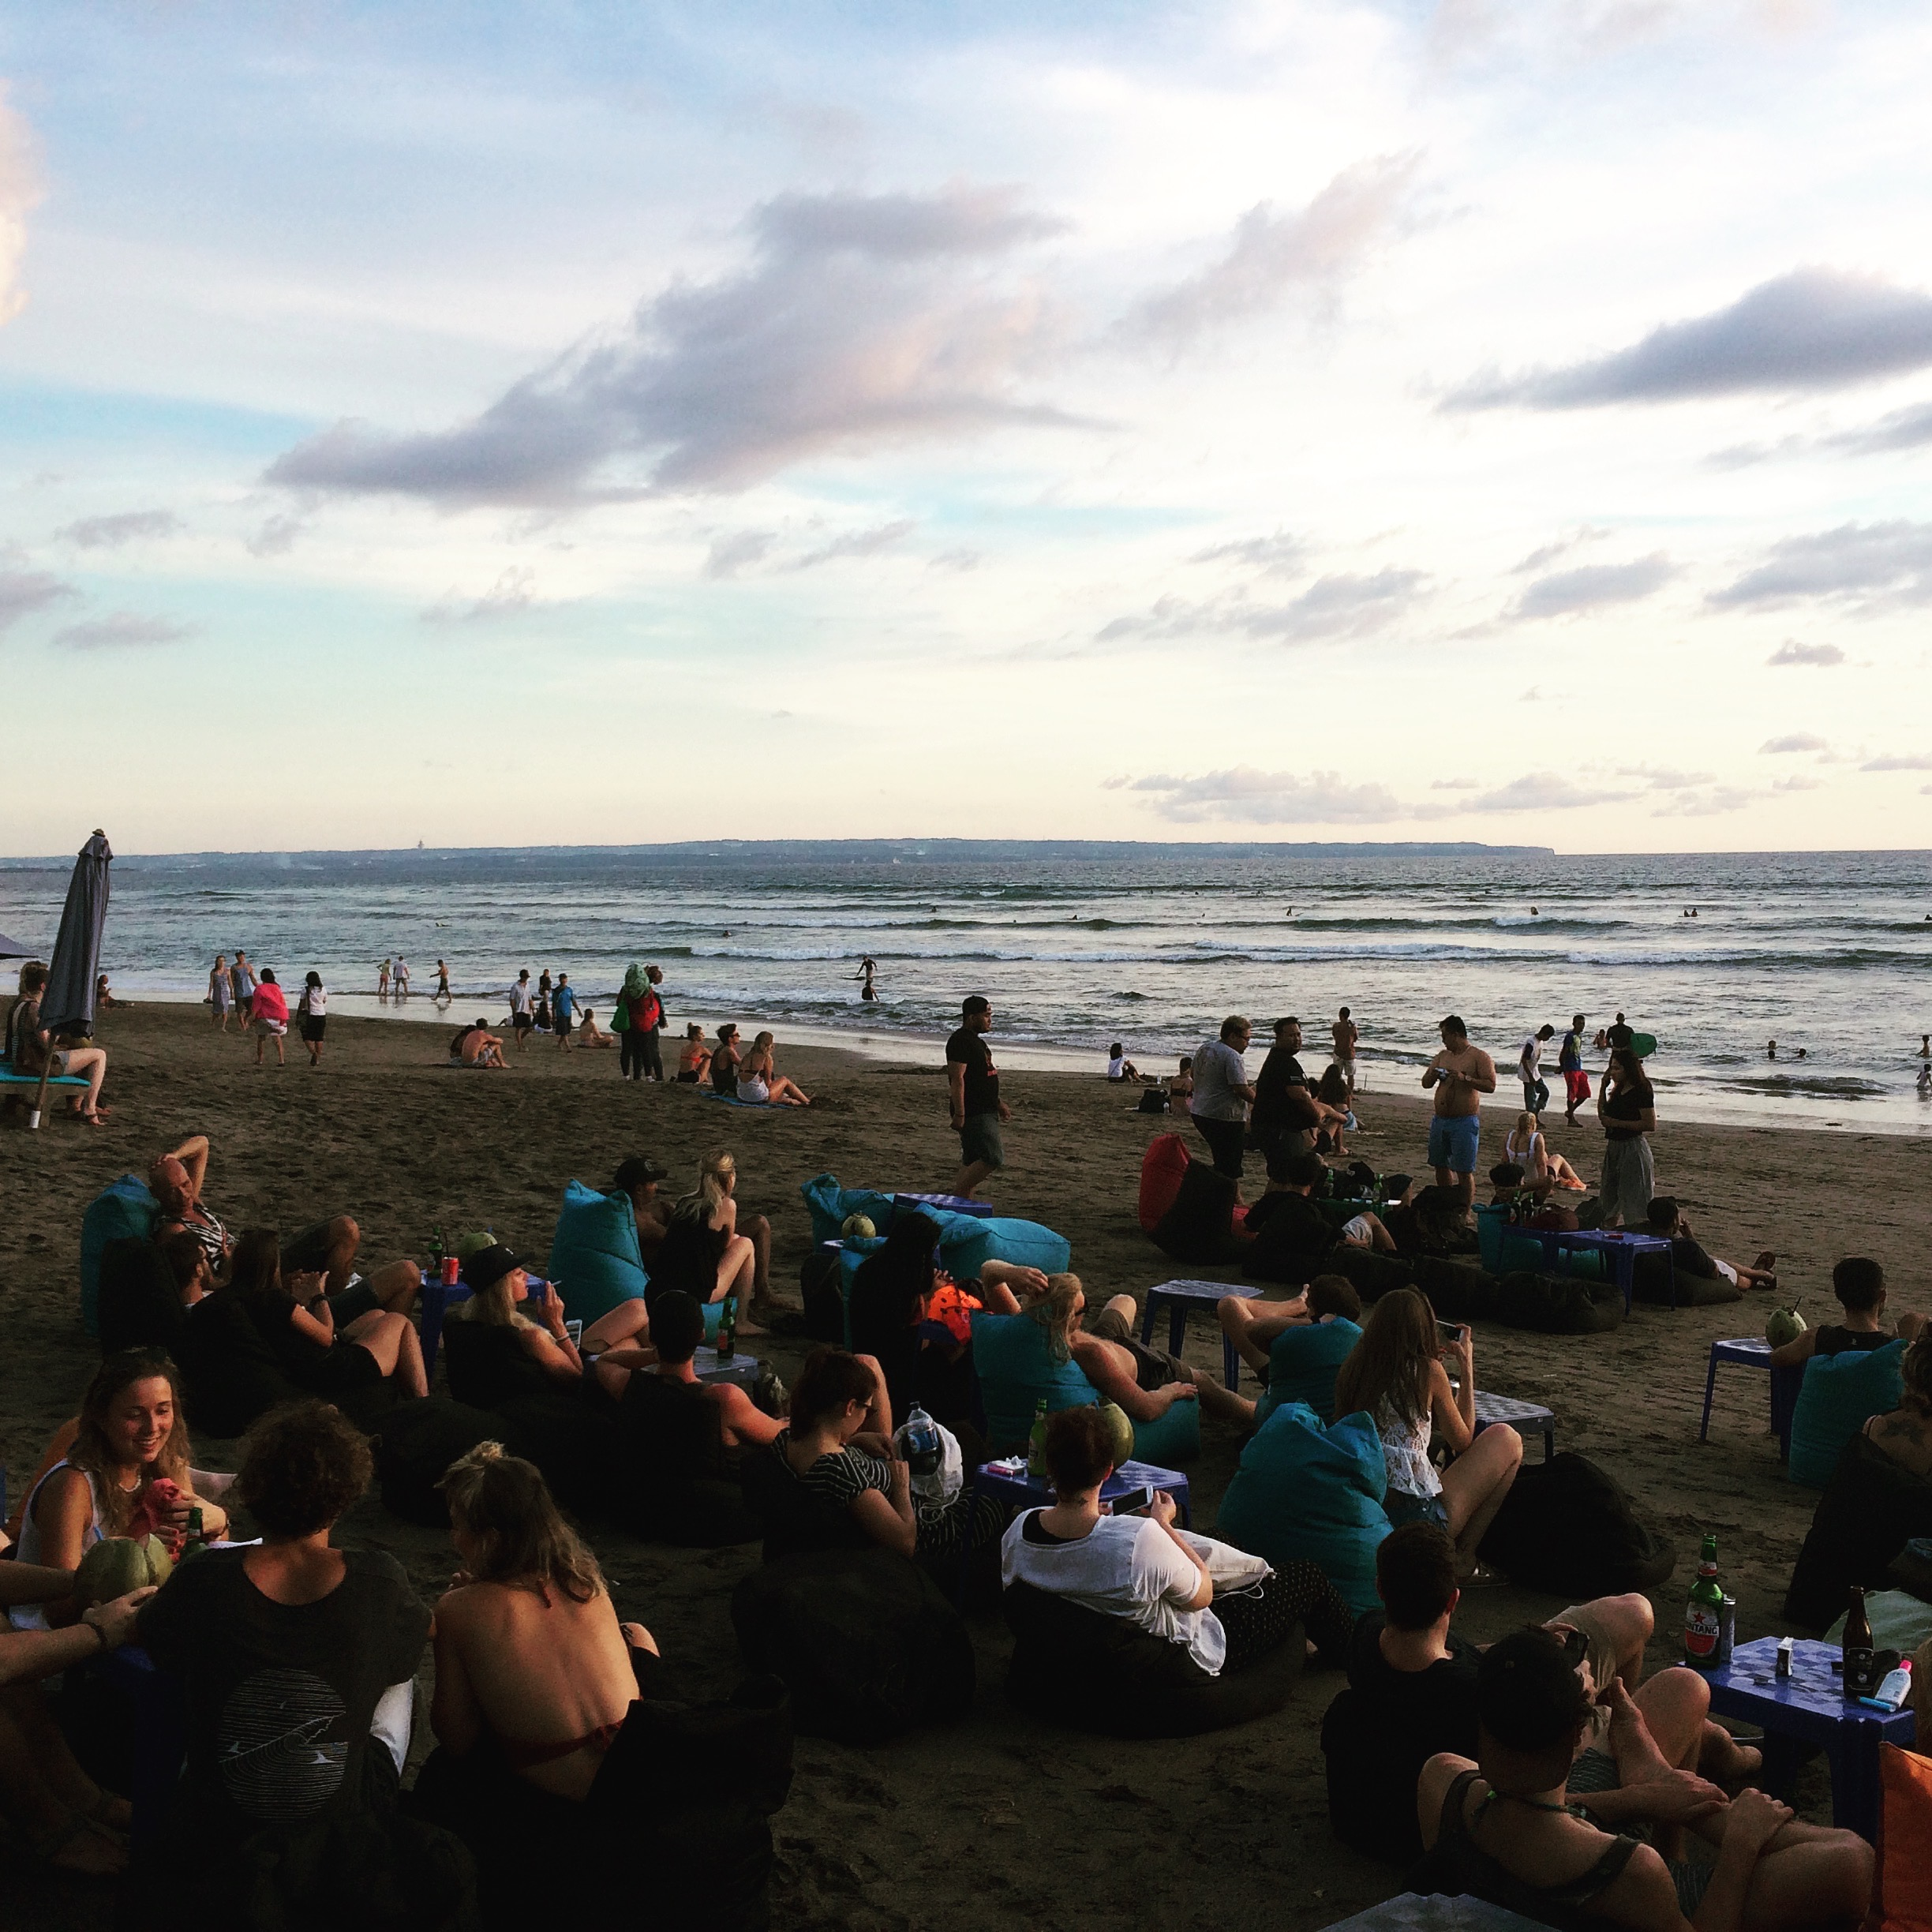 People sitting on bean bags and drinking on the beach. They are waiting for the sunset in Bali.